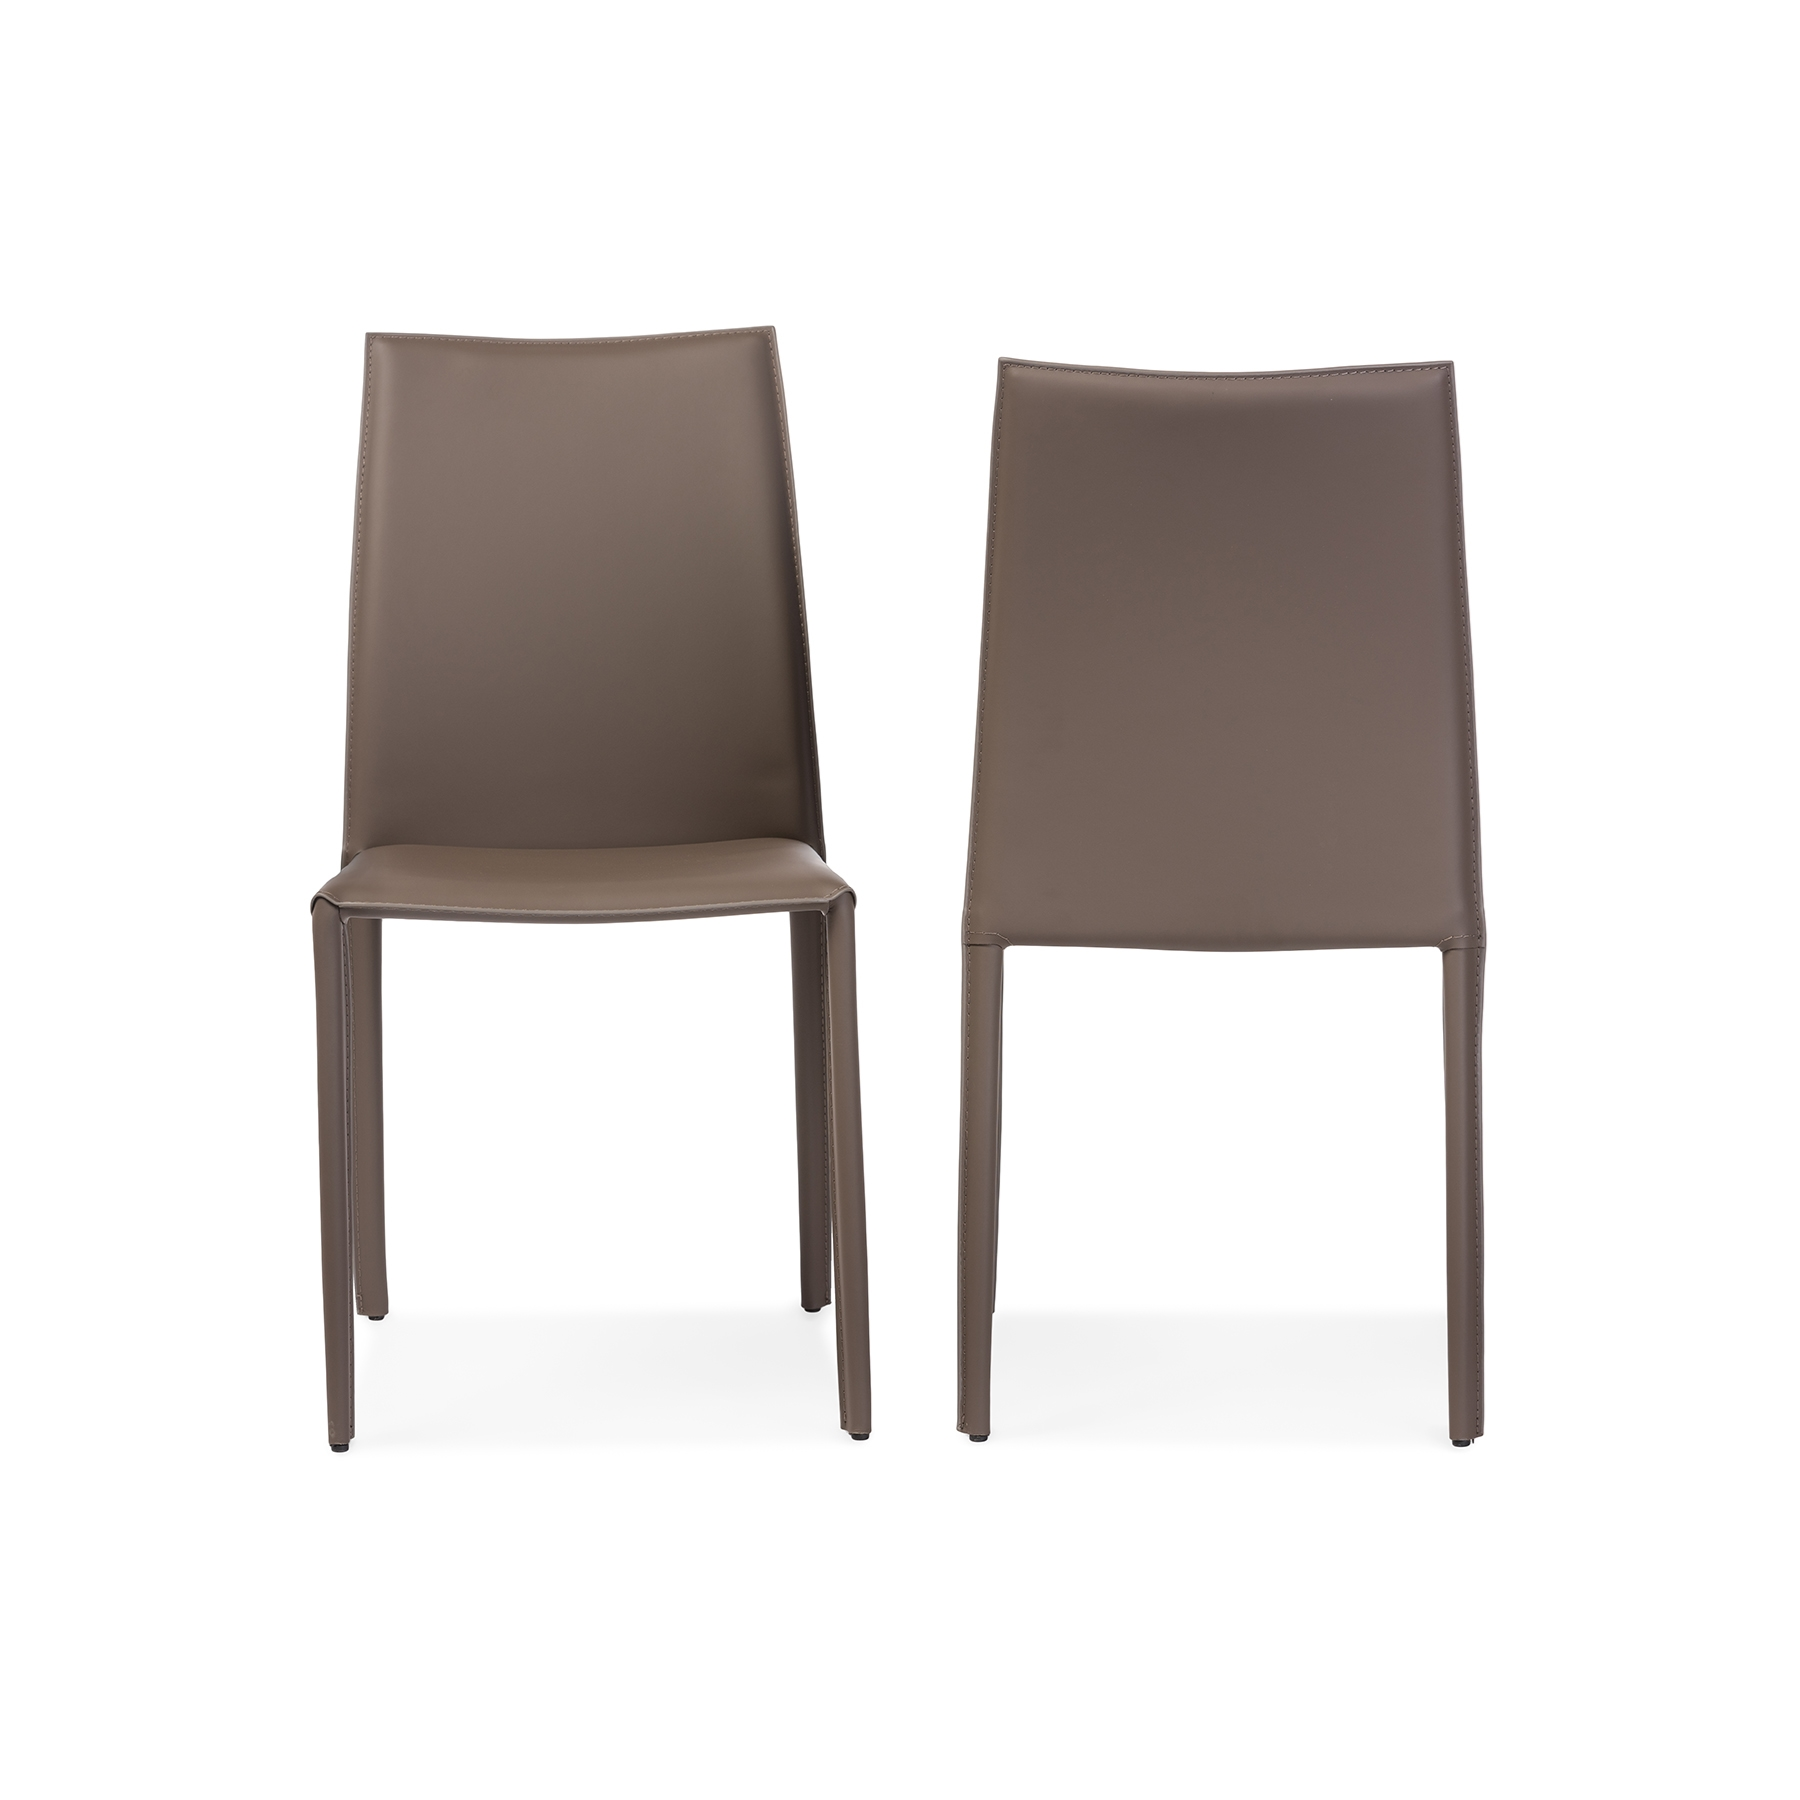 Baxton Studio Rockford Modern And Contemporary Taupe Bonded Leather  Upholstered Dining Chair